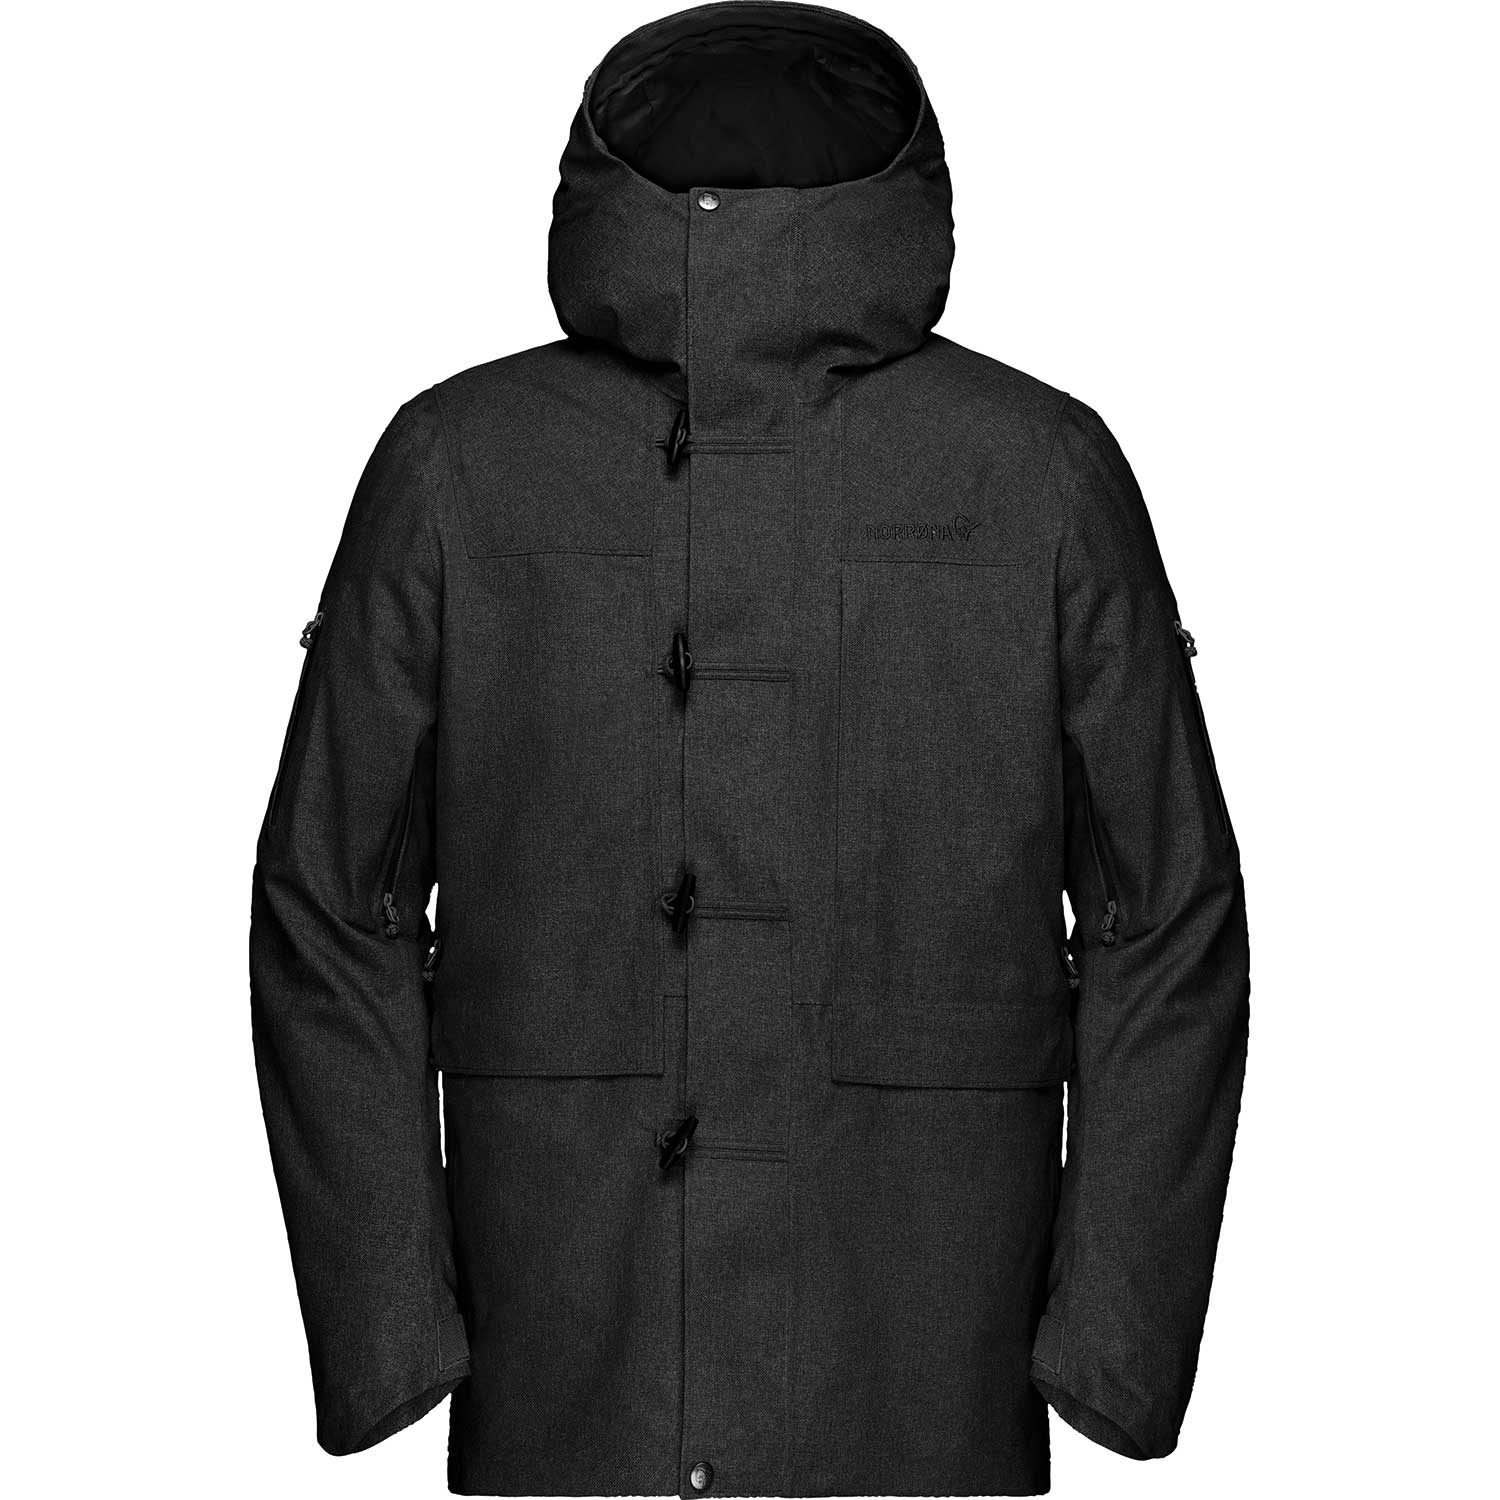 røldal Gore-Tex insulated Jacket (M)